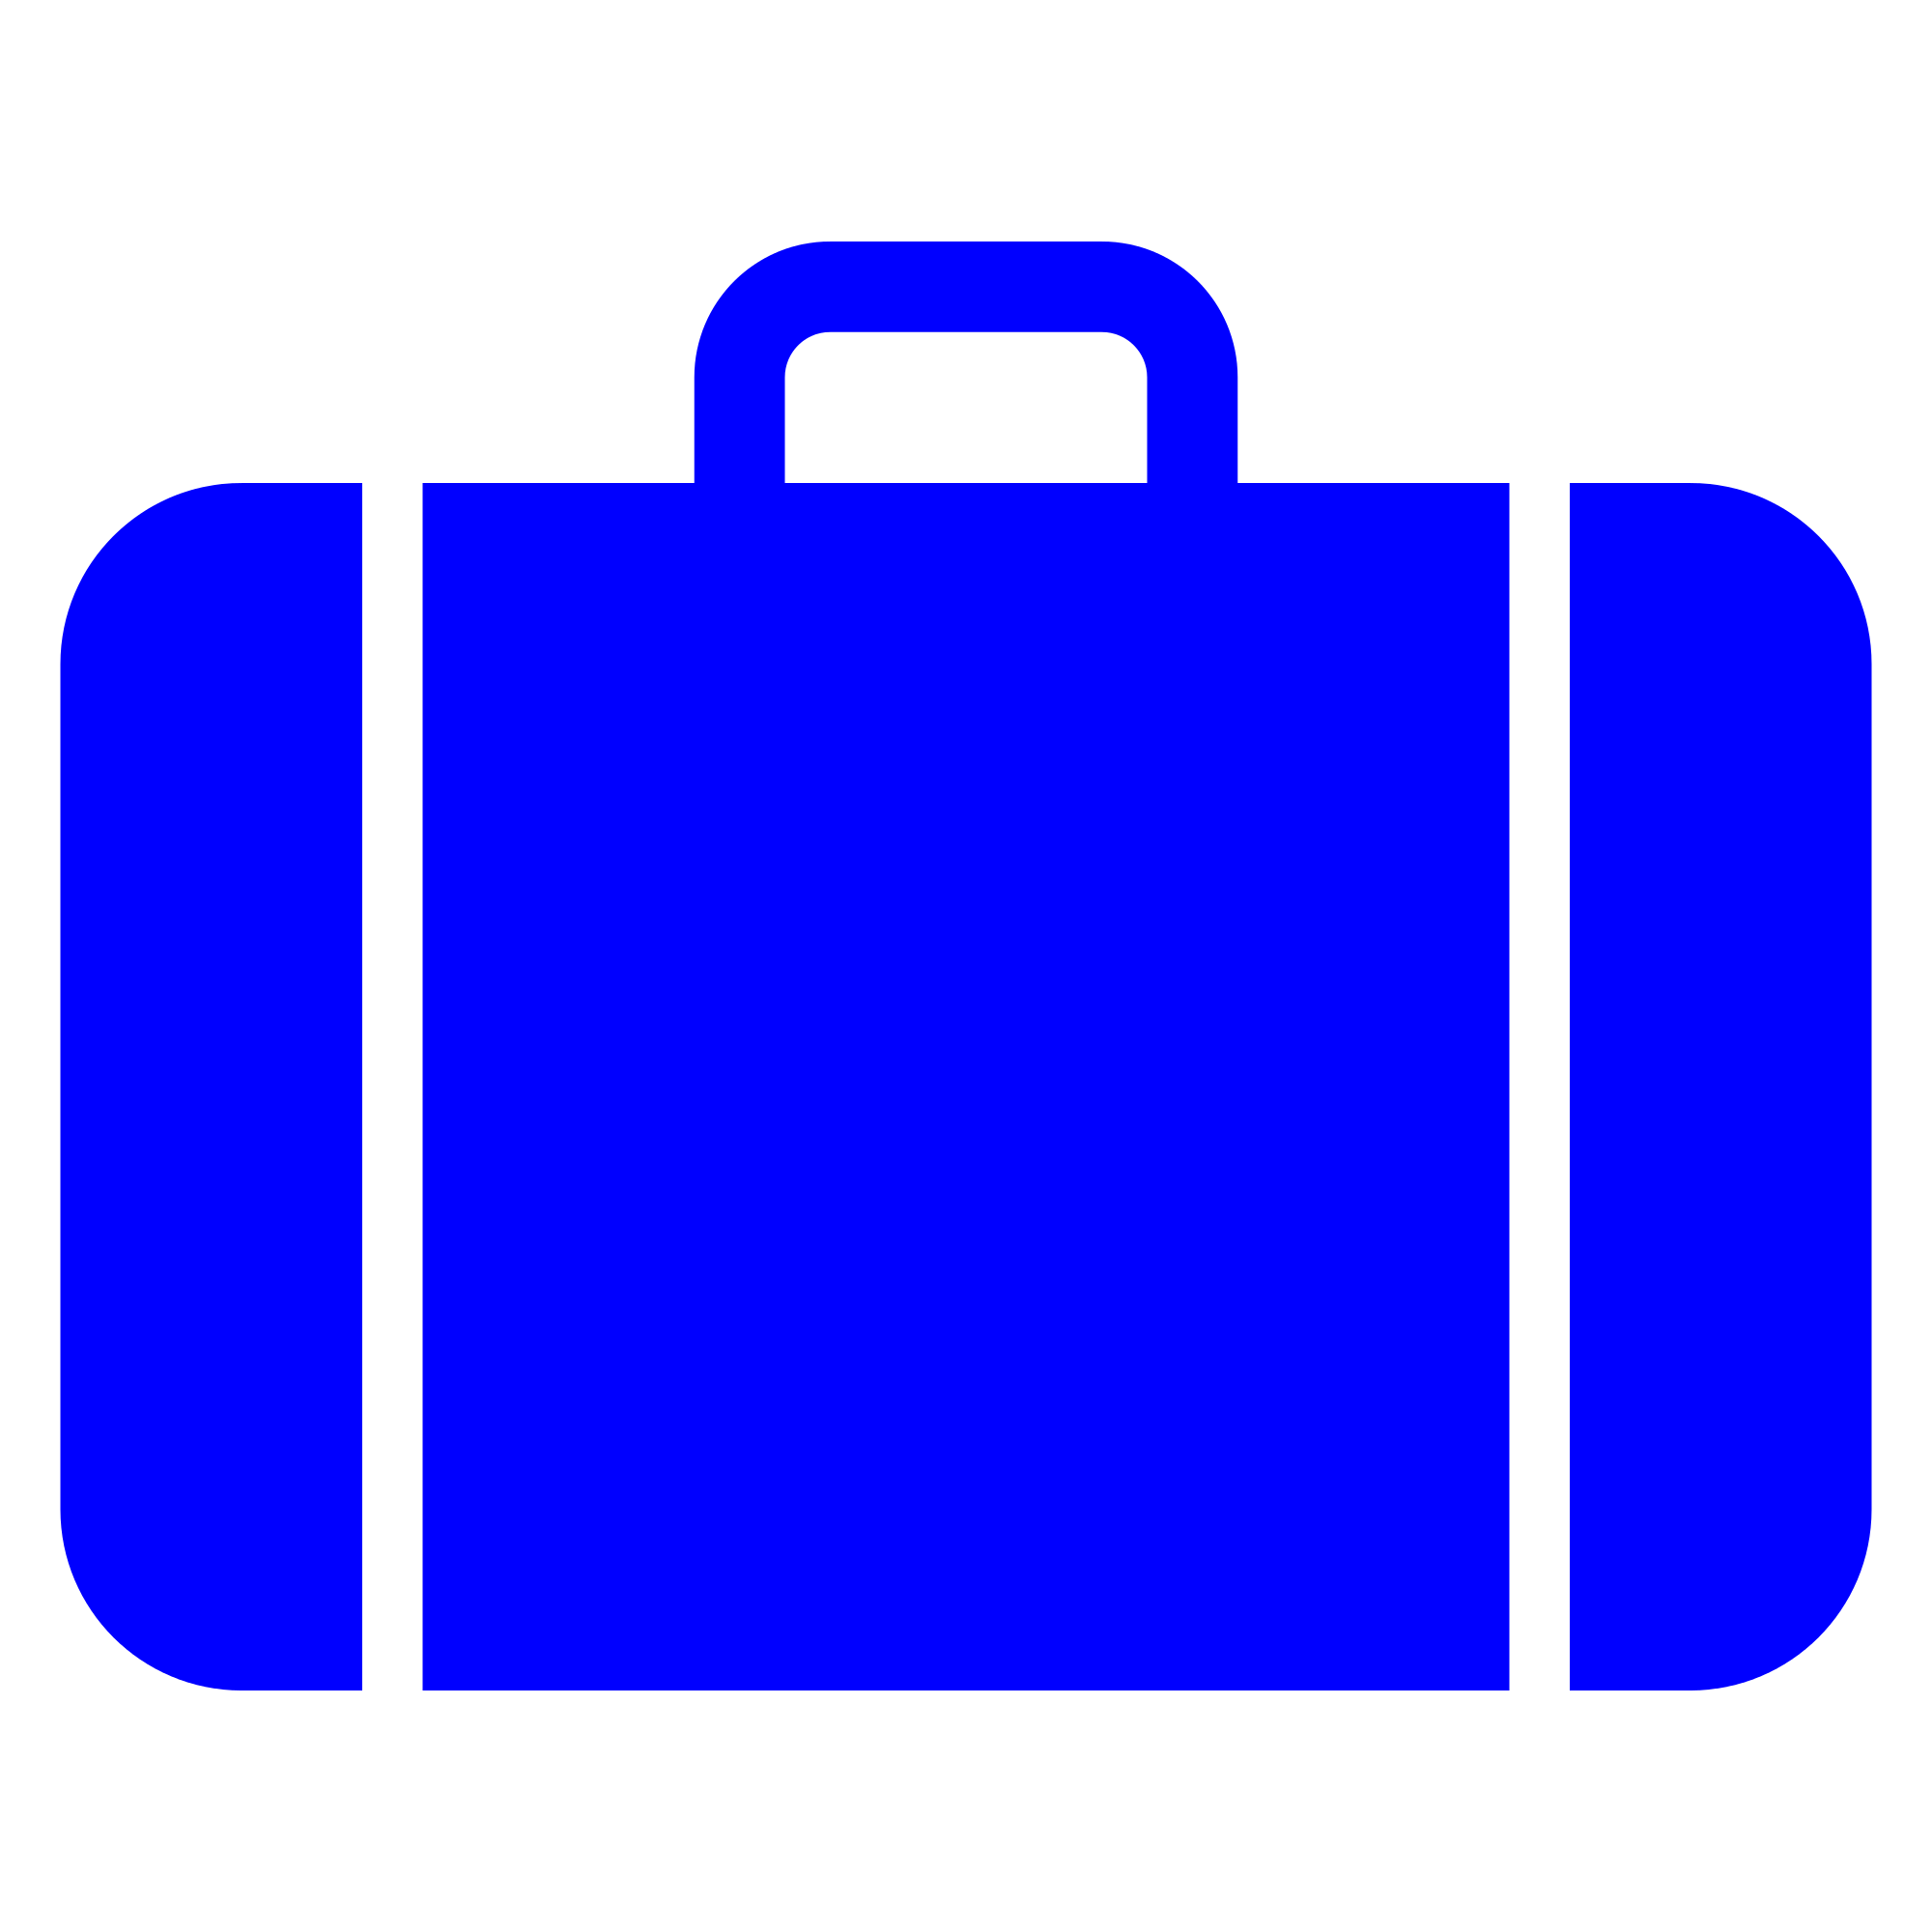 Luggage clipart work bag. File suitcase icon blue